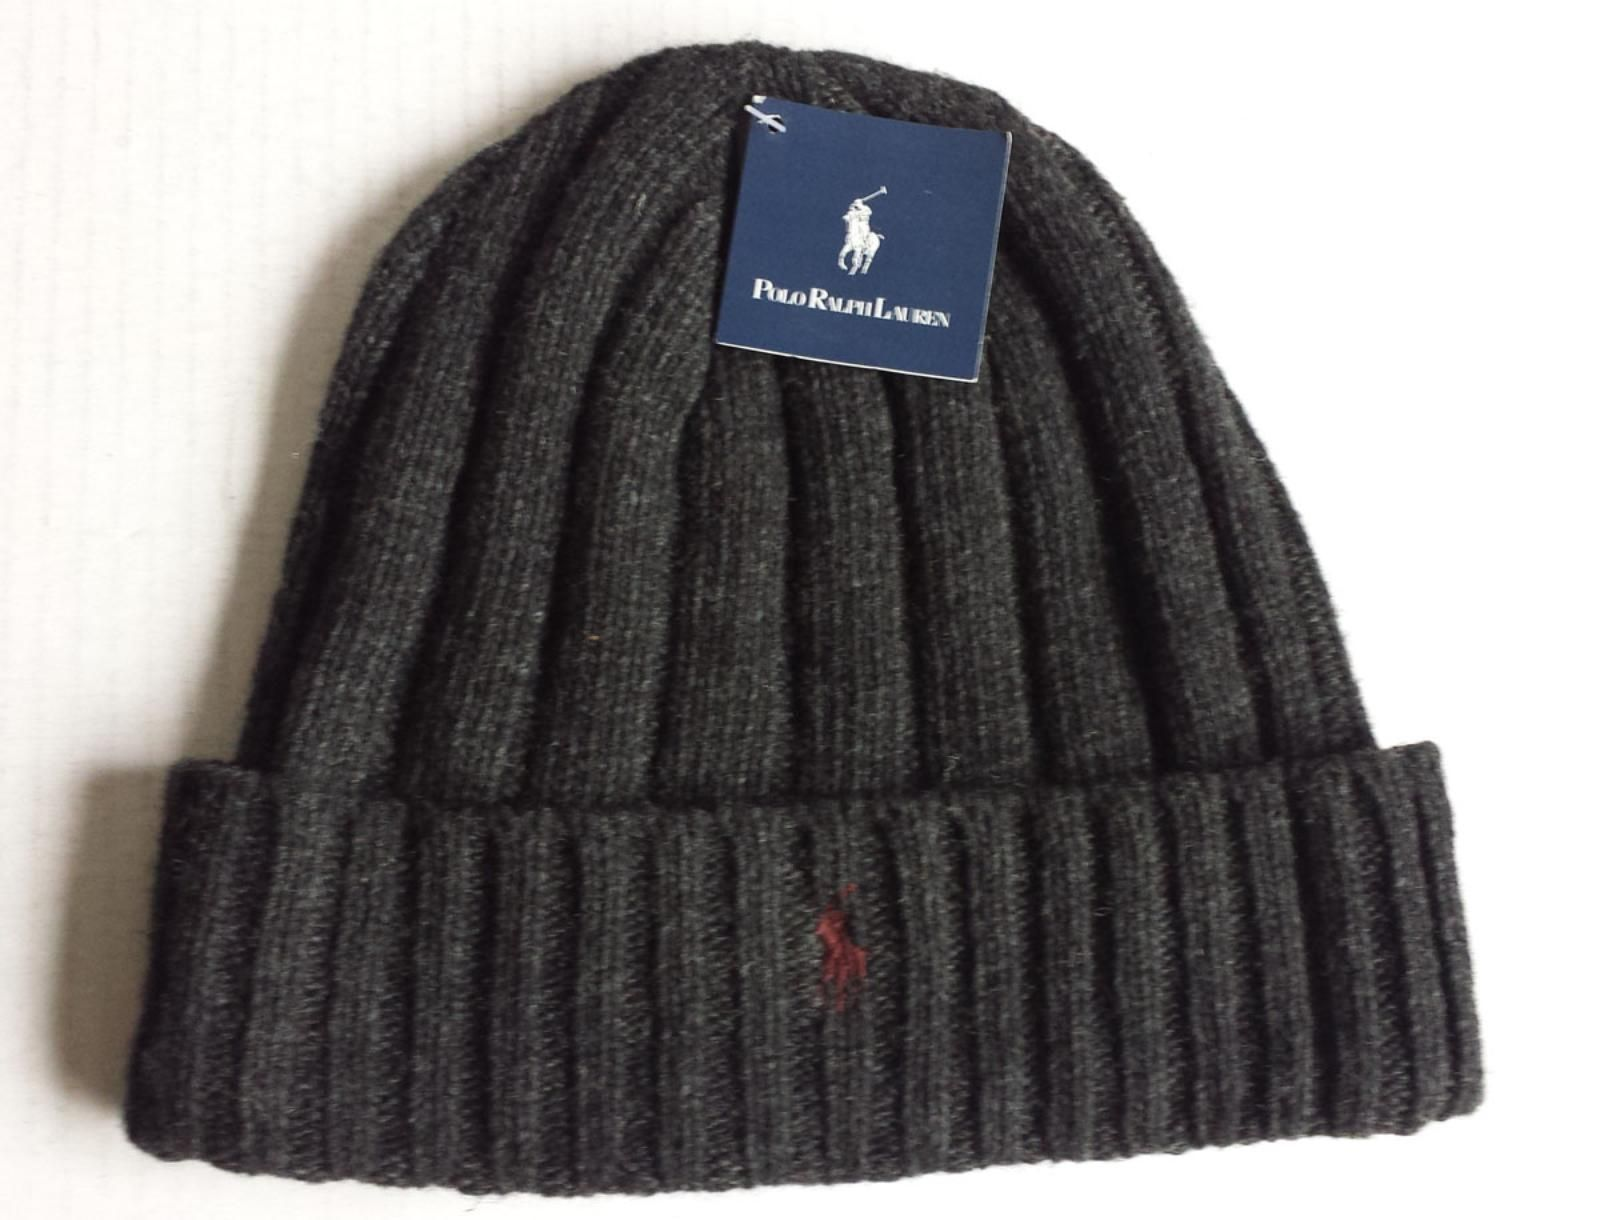 f3c088fc #POLO Ralph Lauren Beaine Hat with Cuff Charcoal Color (gray ) with Red  Logo NWT RalphLauren visit our ebay store at http://stores.ebay.com/esquir   ...